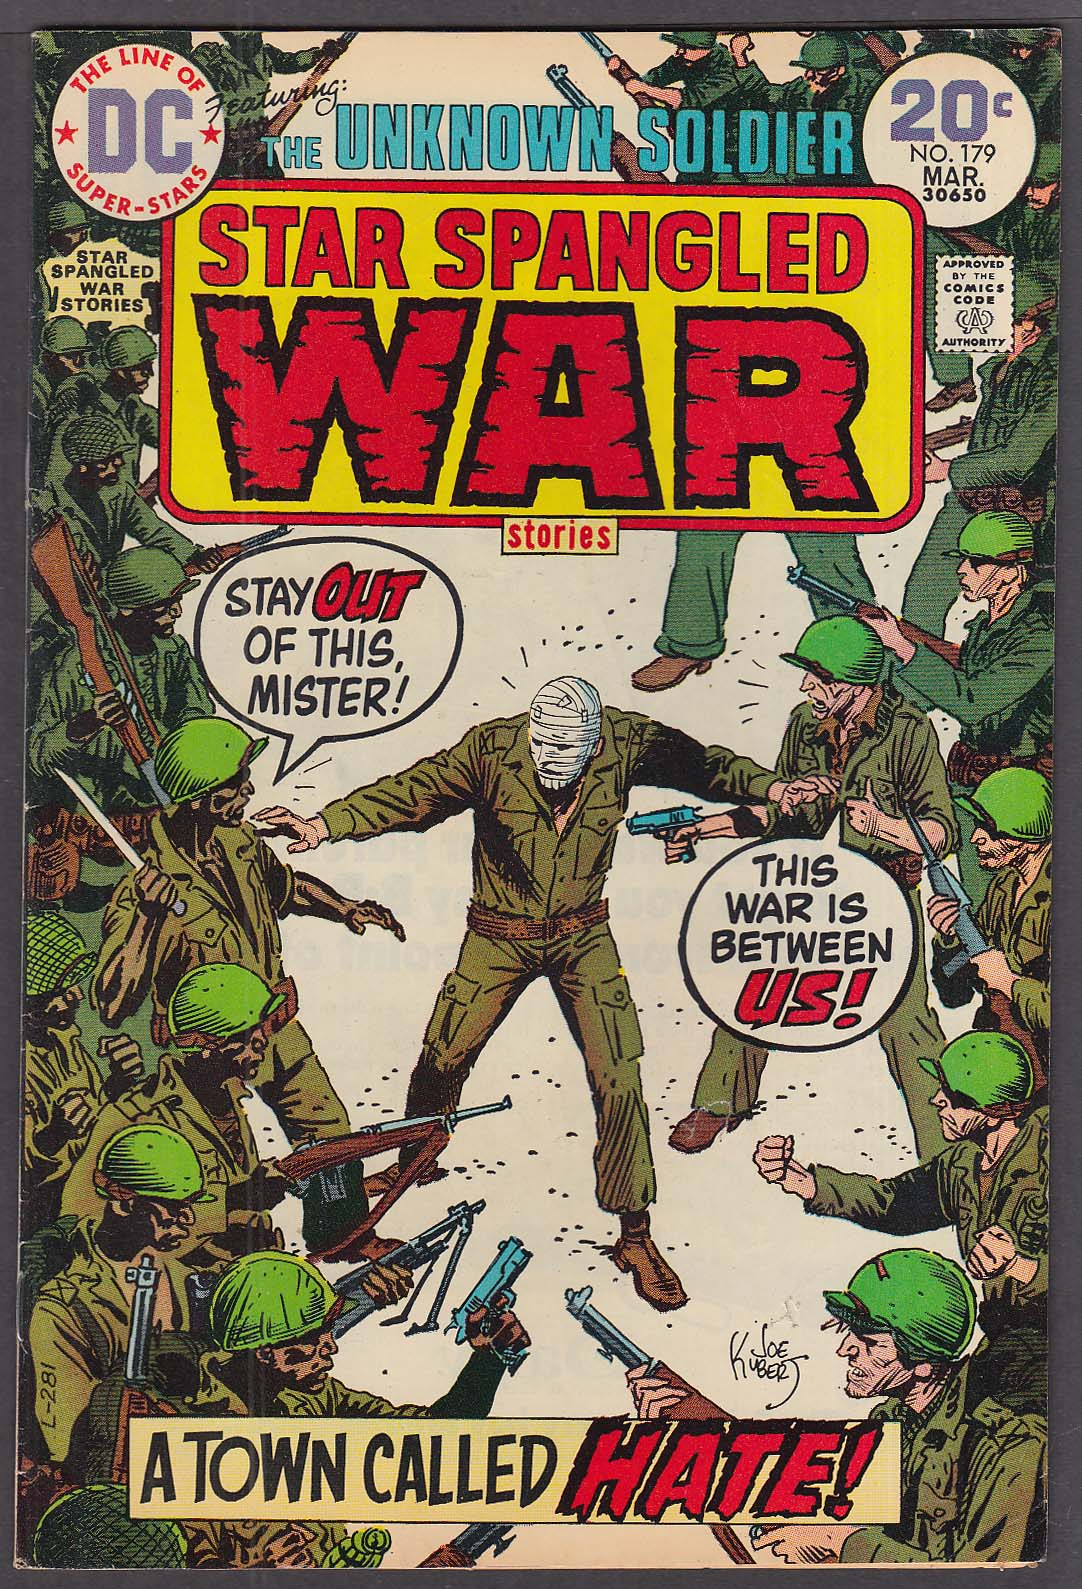 STAR SPANGLED WAR STORIES #179 Unknown Soldier DC comic book 3/1974